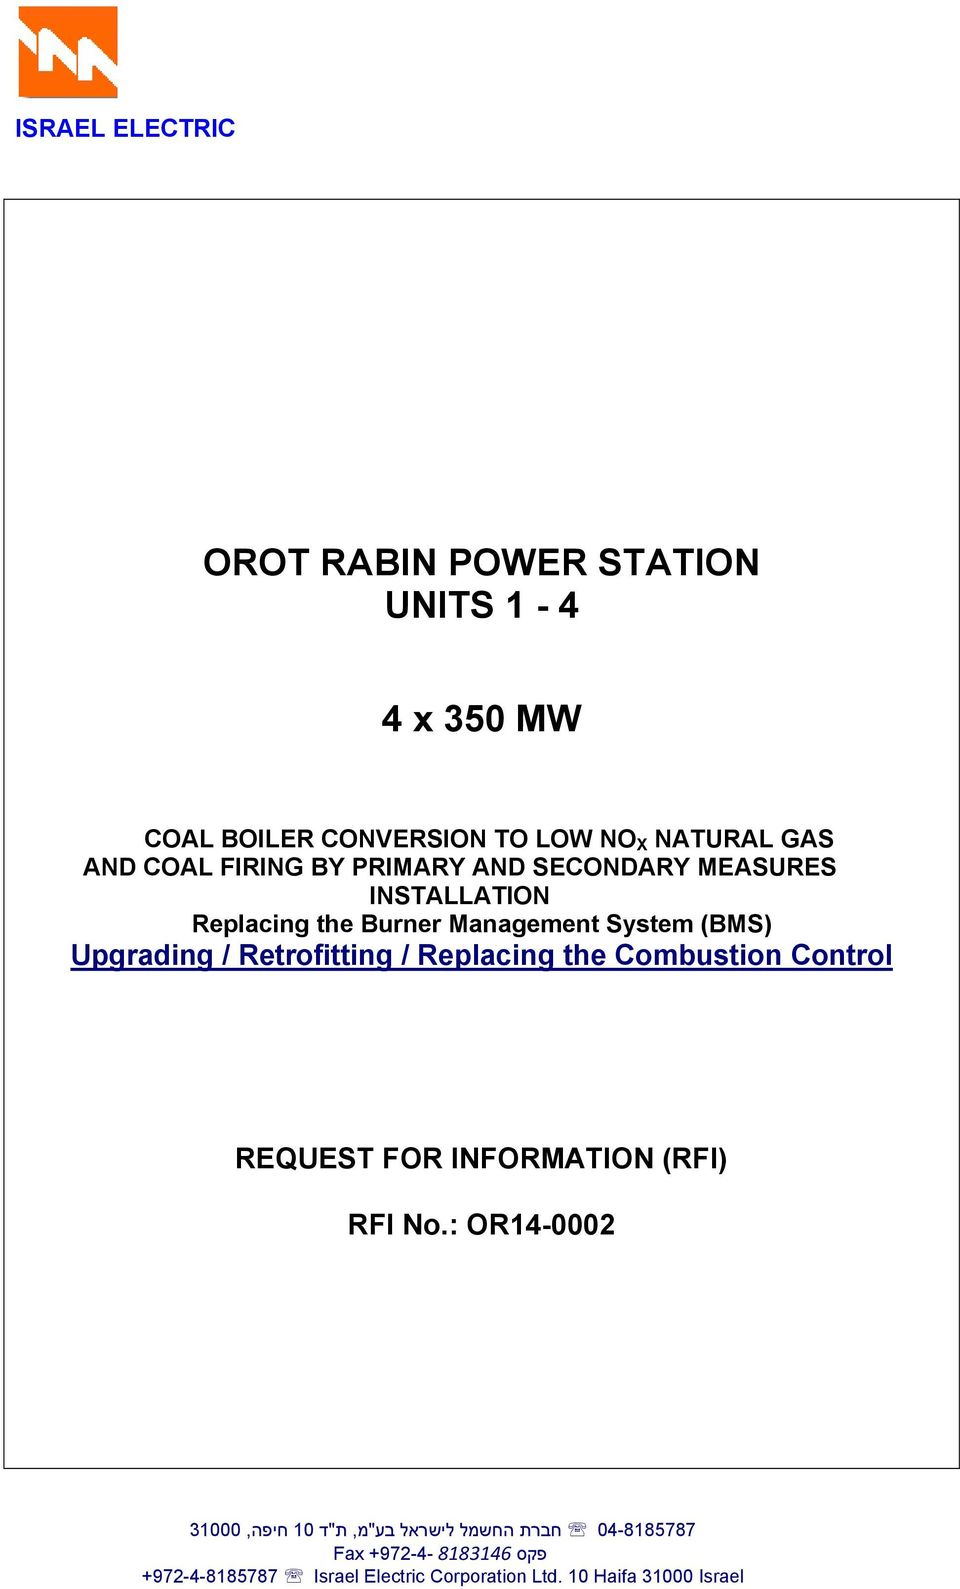 / Retrofitting / Replacing the Combustion Control REQUEST FOR INFORMATION (RFI) 04-8185787 חברת החשמל לישראל